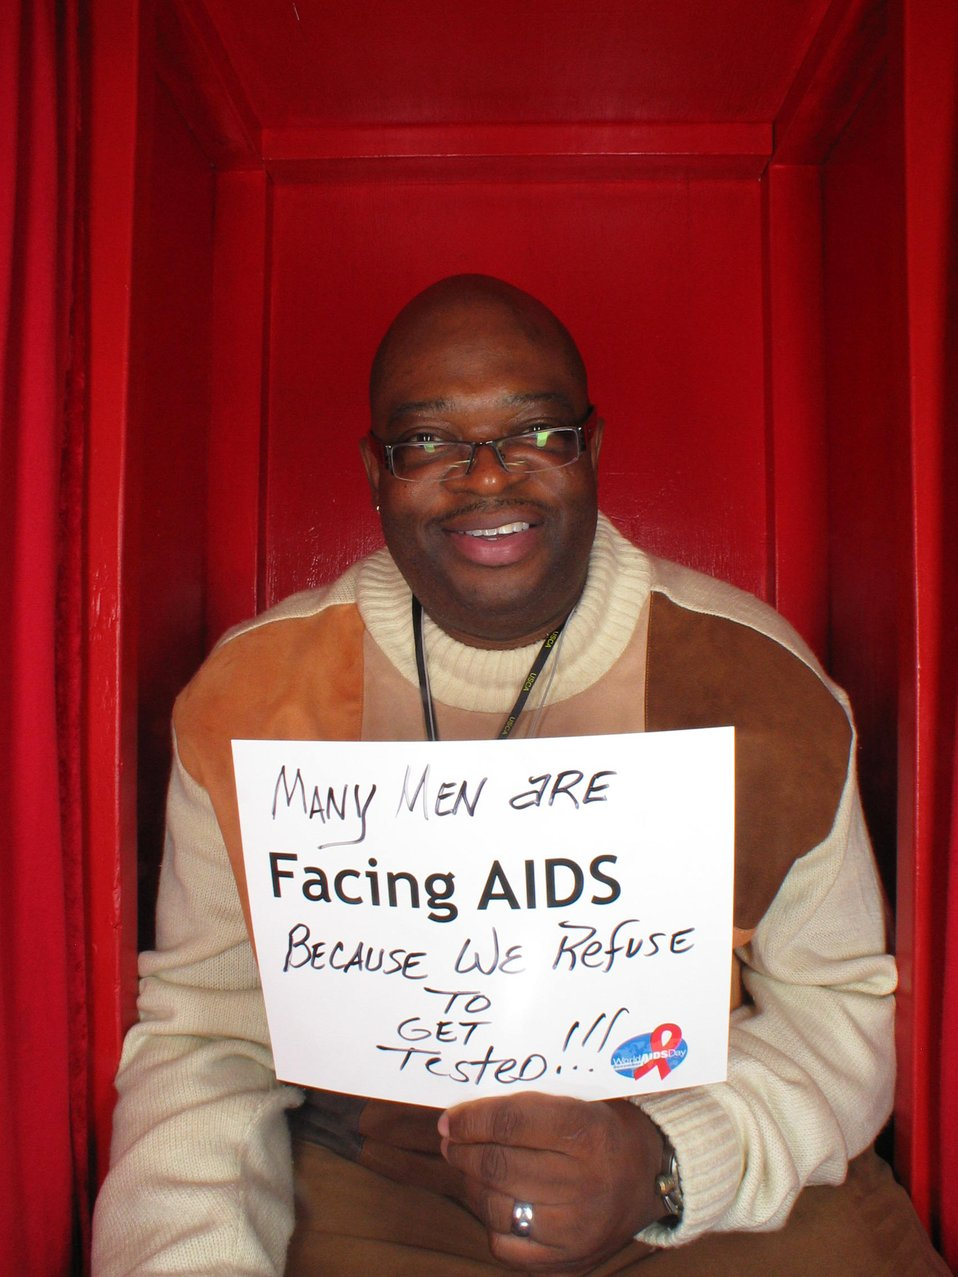 Many men are Facing AIDS because we refuse to get tested!!!